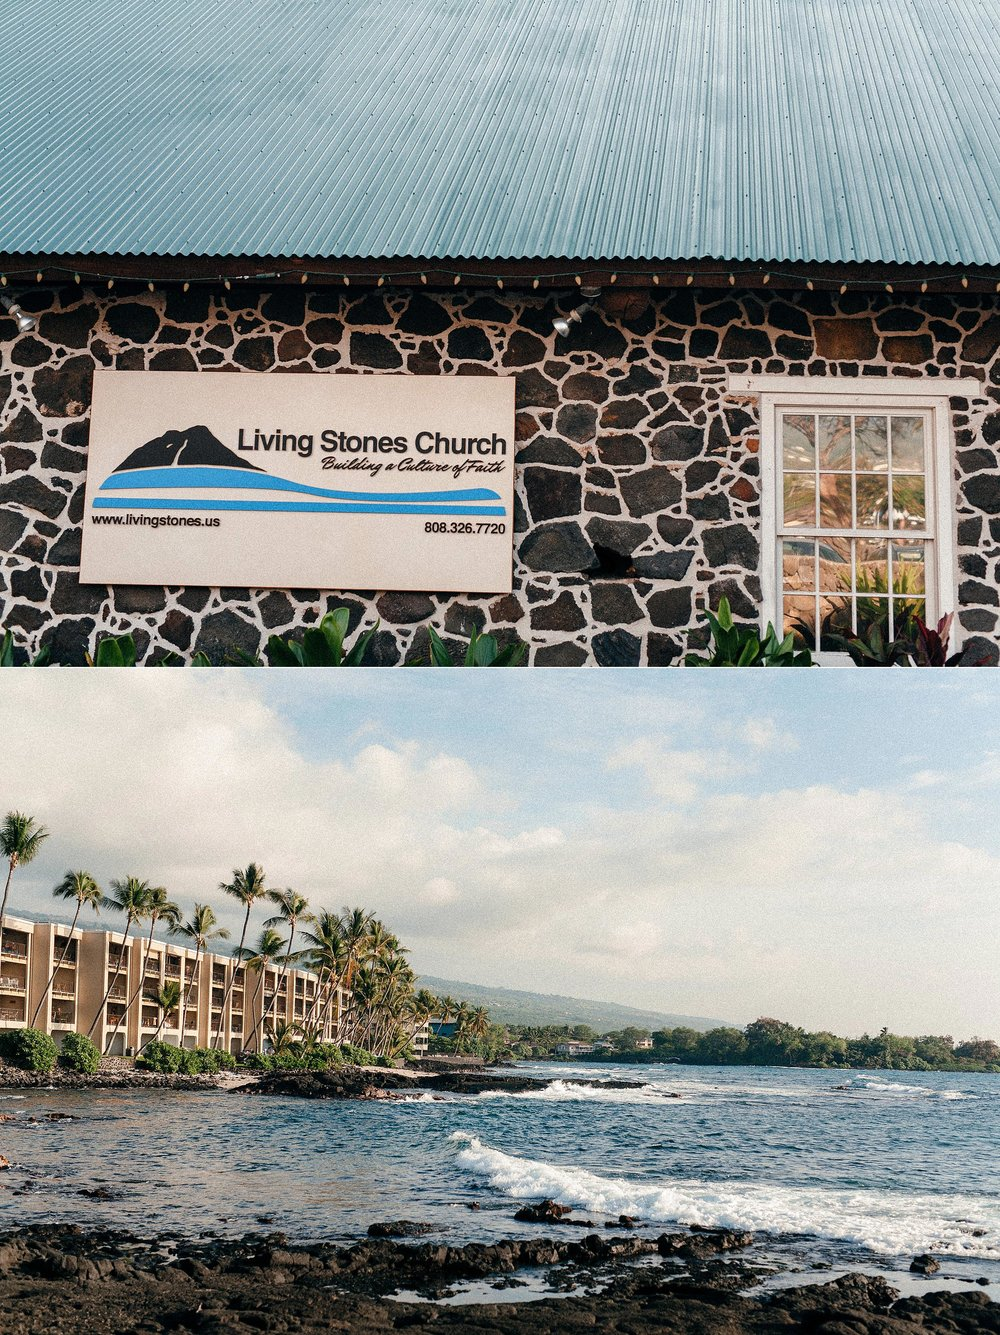 Kona-Big-Island-Hawaii-New-Years-Eve-Wedding-with-Ceremony-at-Living-Stones-Church-and-Reception-at-Daylight-Mind-Coffee_0010.jpg